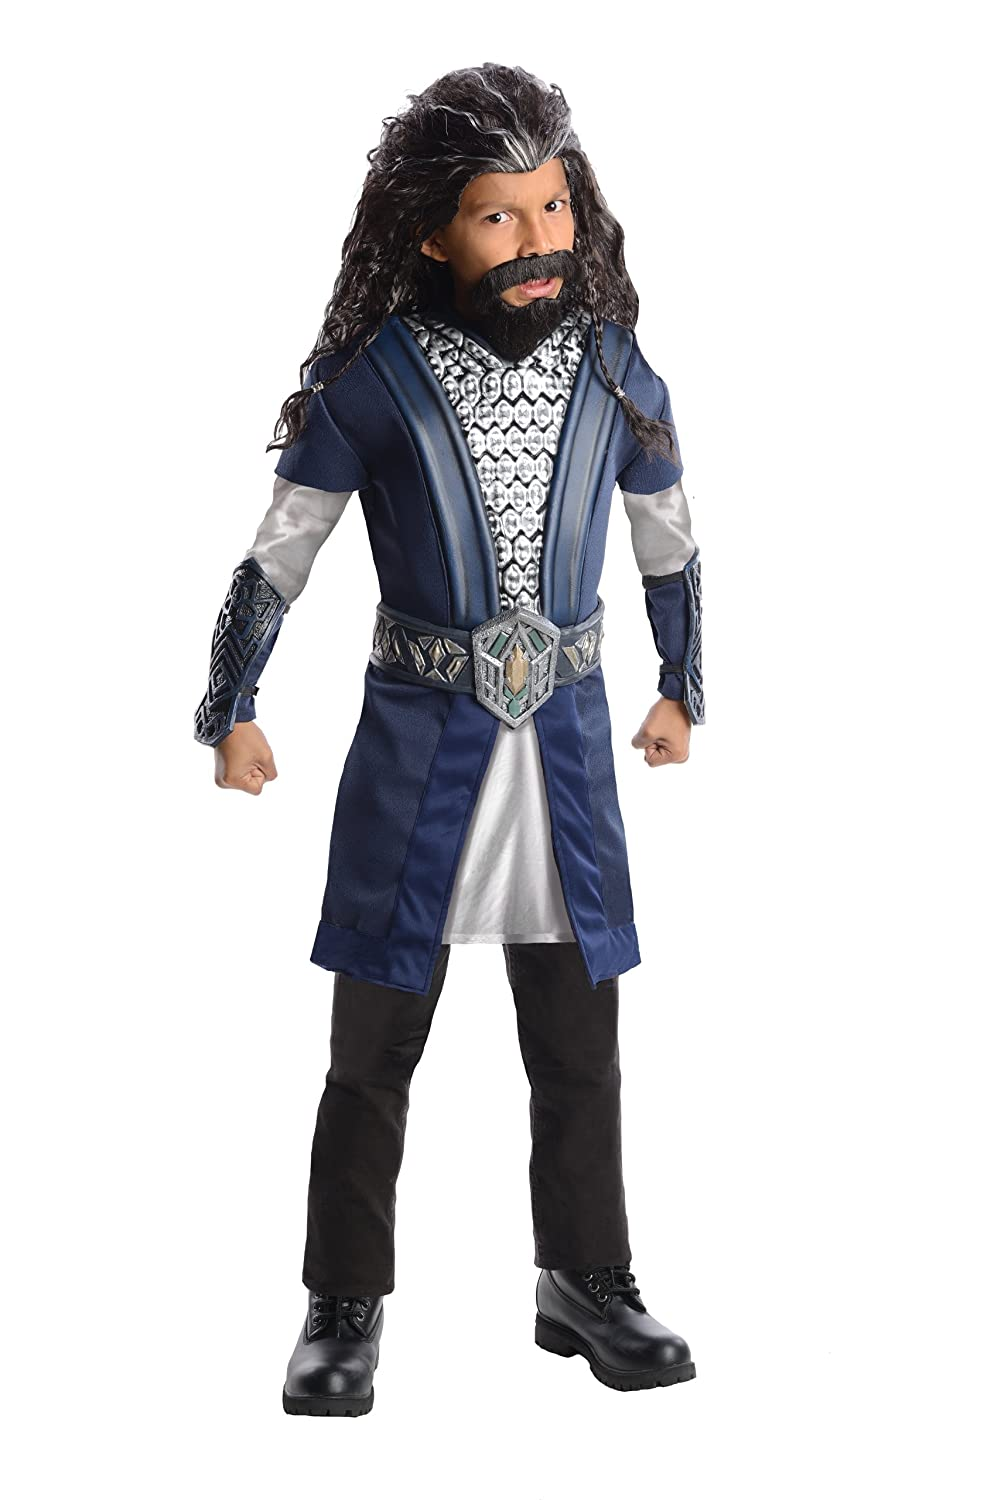 The Hobbit, Deluxe Thorin Oakenshield Costume Child Kids